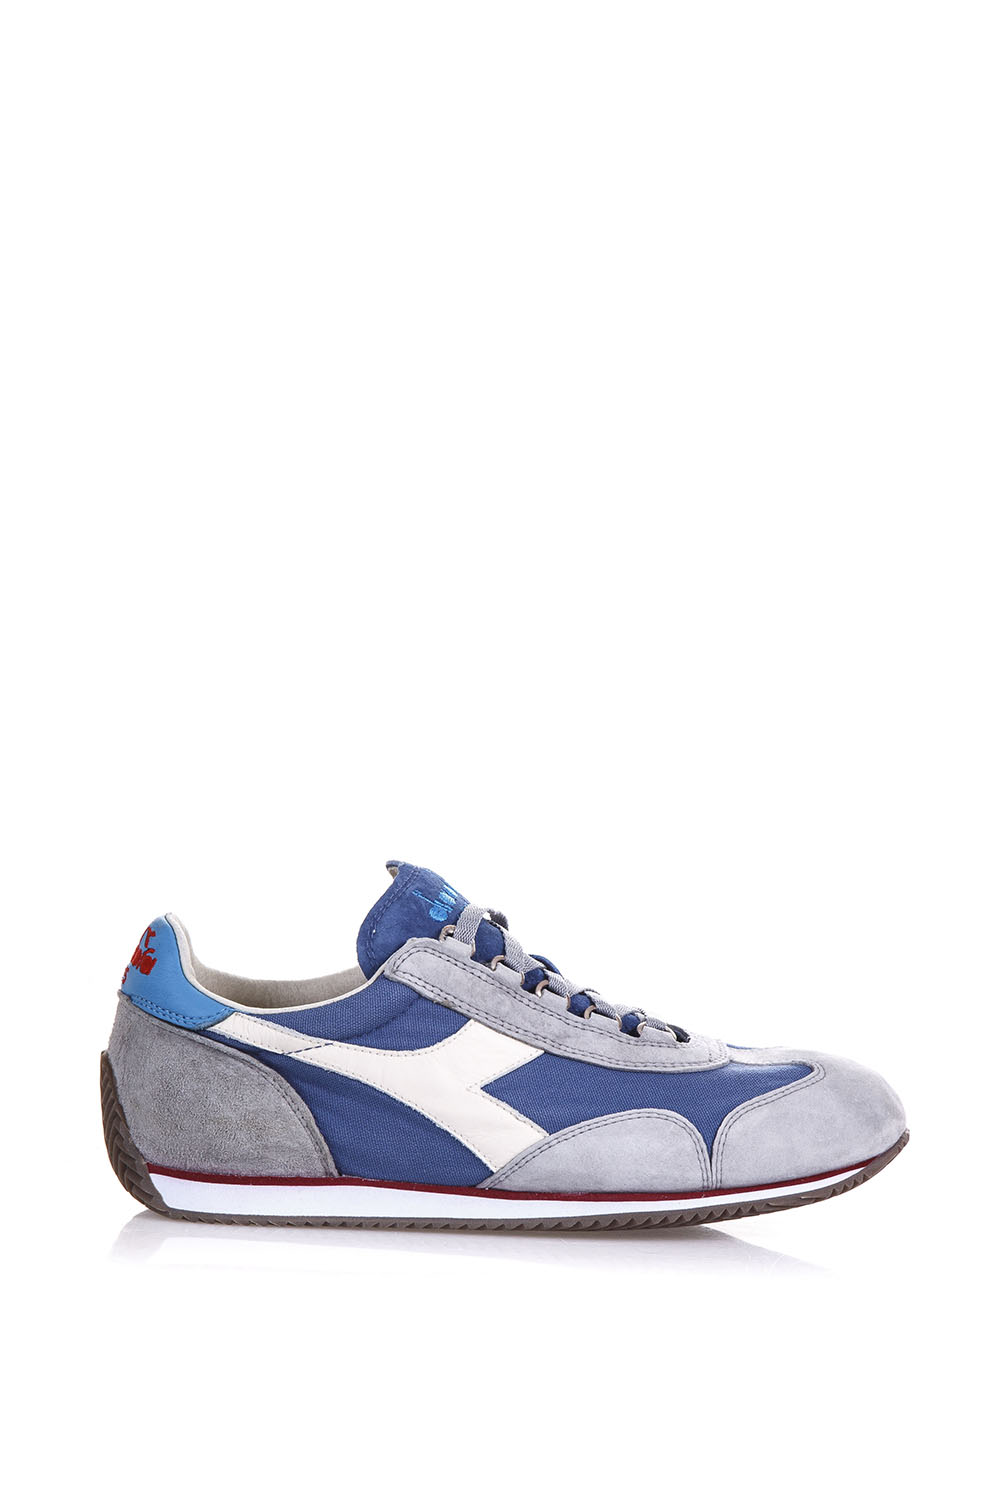 Equipe Stone Washed sneakers - White Diadora xGwpo